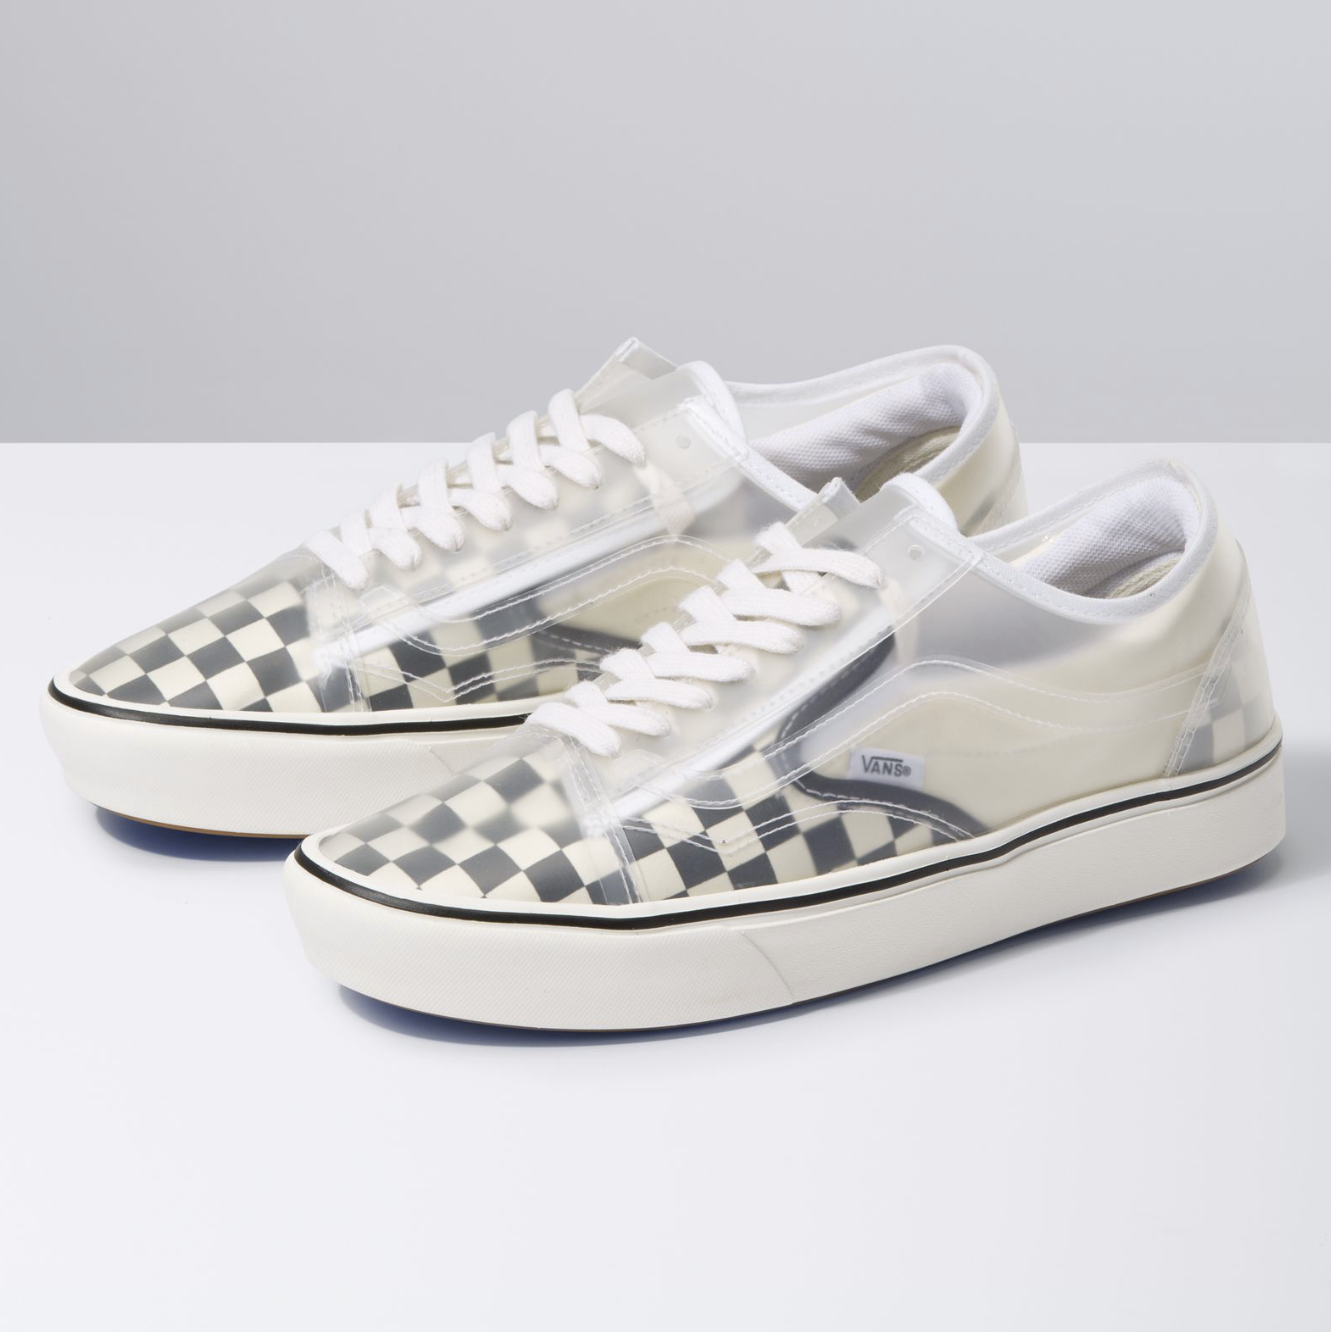 Pin By Nathan Todd On Shoes In 2020 Classic Shoes Vans Sneakers